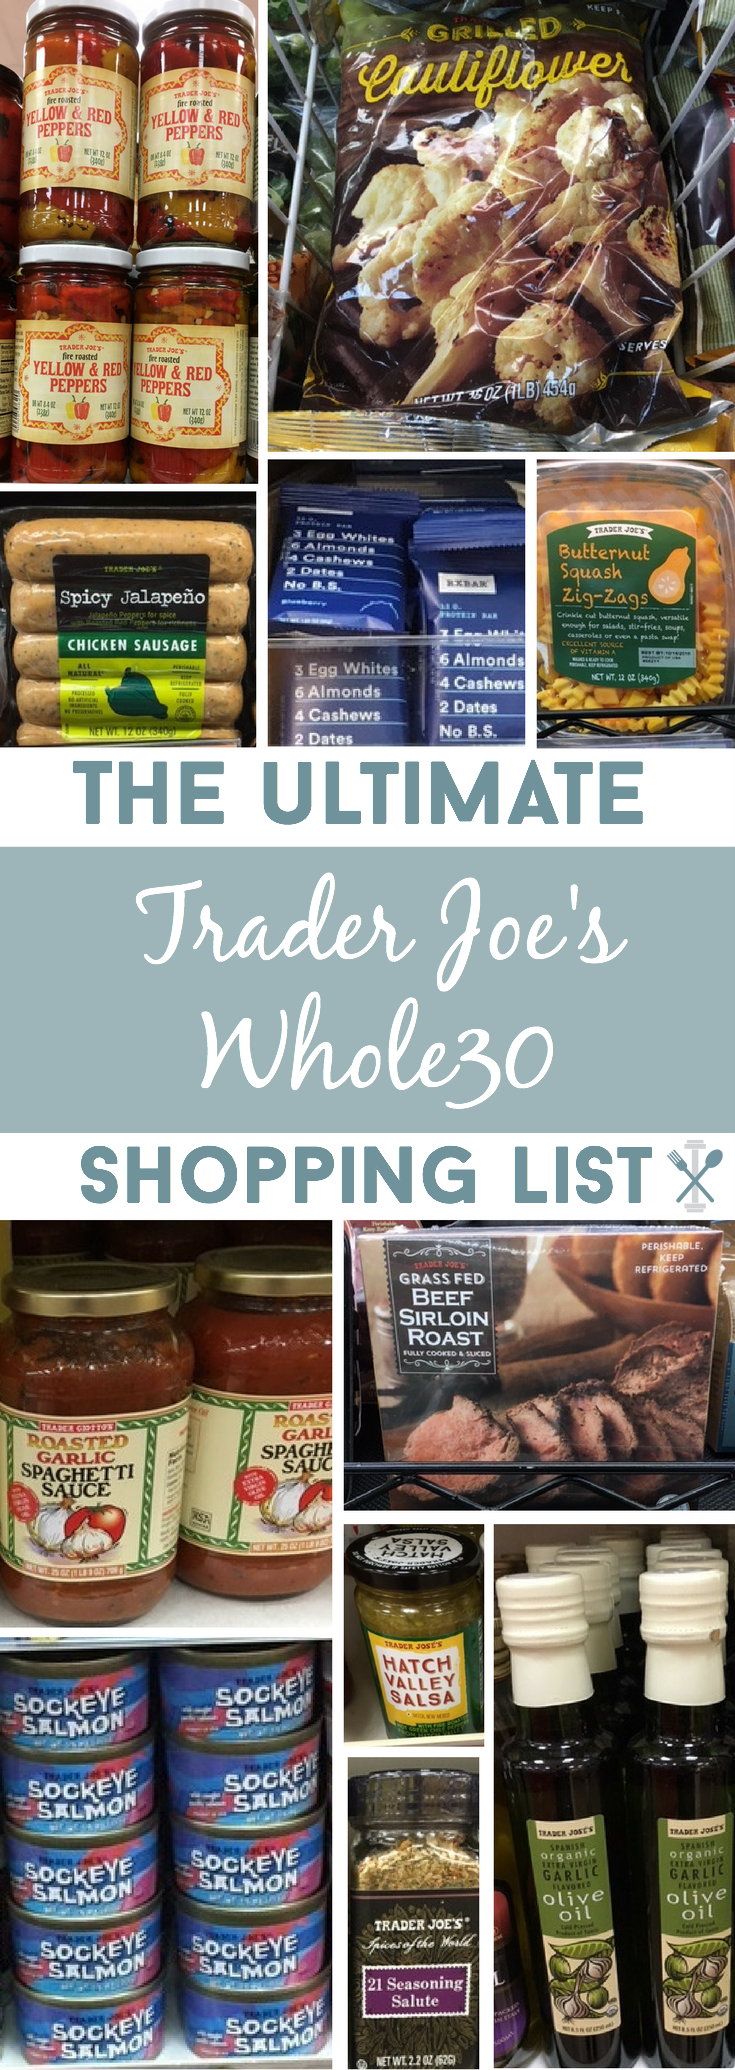 The Ultimate Whole30 Trader Joes Shopping List